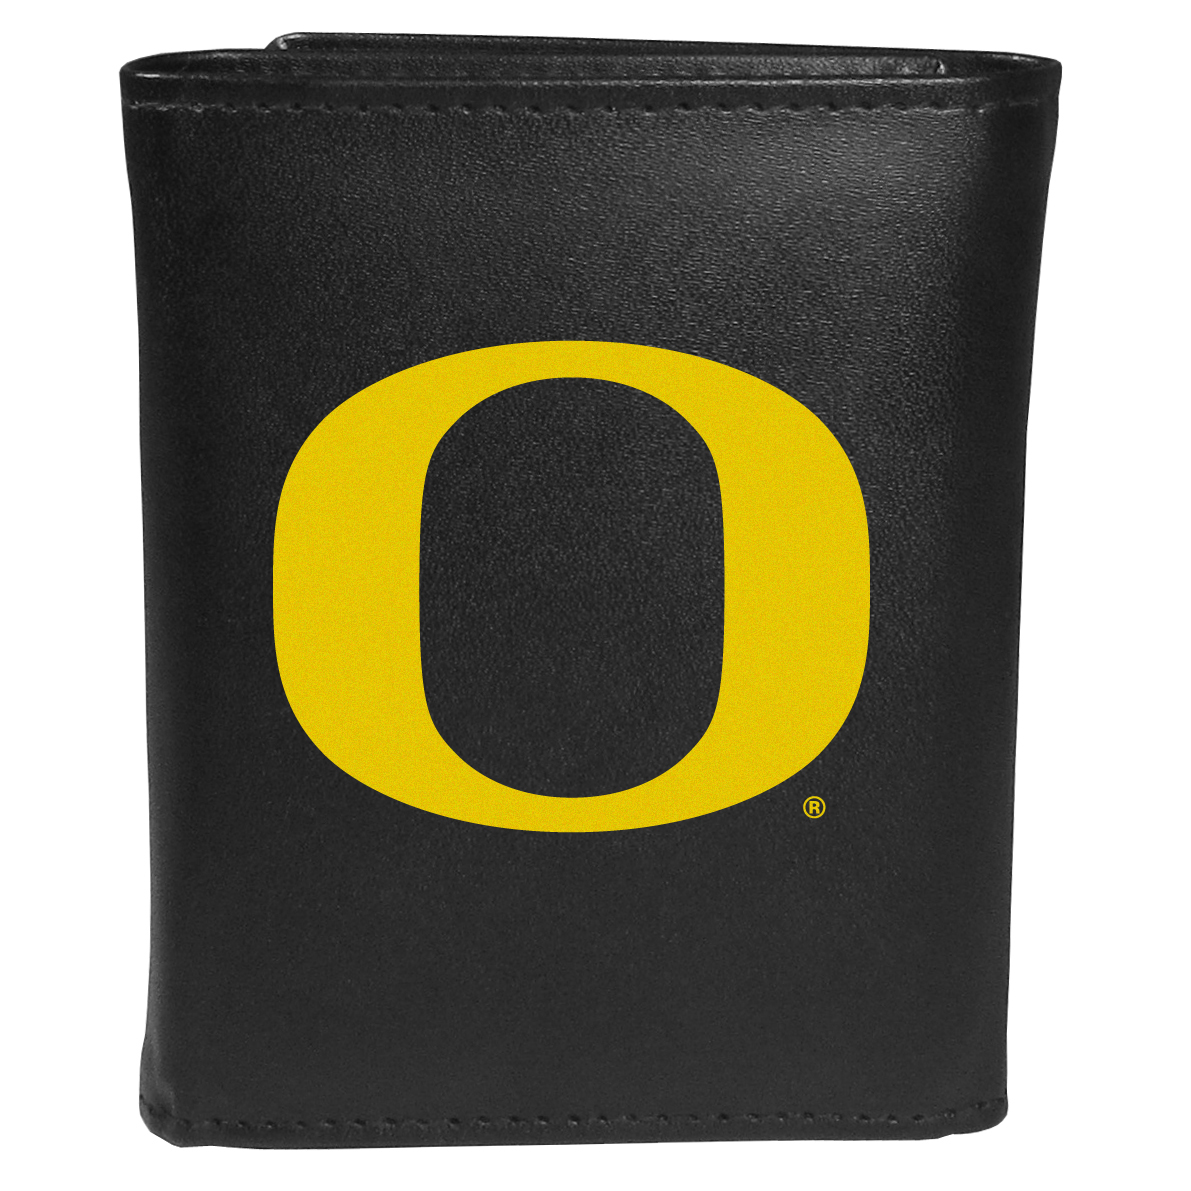 Oregon Ducks Tri-fold Wallet Large Logo - Sports fans do not have to sacrifice style with this classic tri-fold wallet that sports theOregon Ducks?extra large logo. This men's fashion accessory has a leather grain look and expert craftmanship for a quality wallet at a great price. The wallet features inner credit card slots, windowed ID slot and a large billfold pocket. The front of the wallet features an extra large printed team logo.